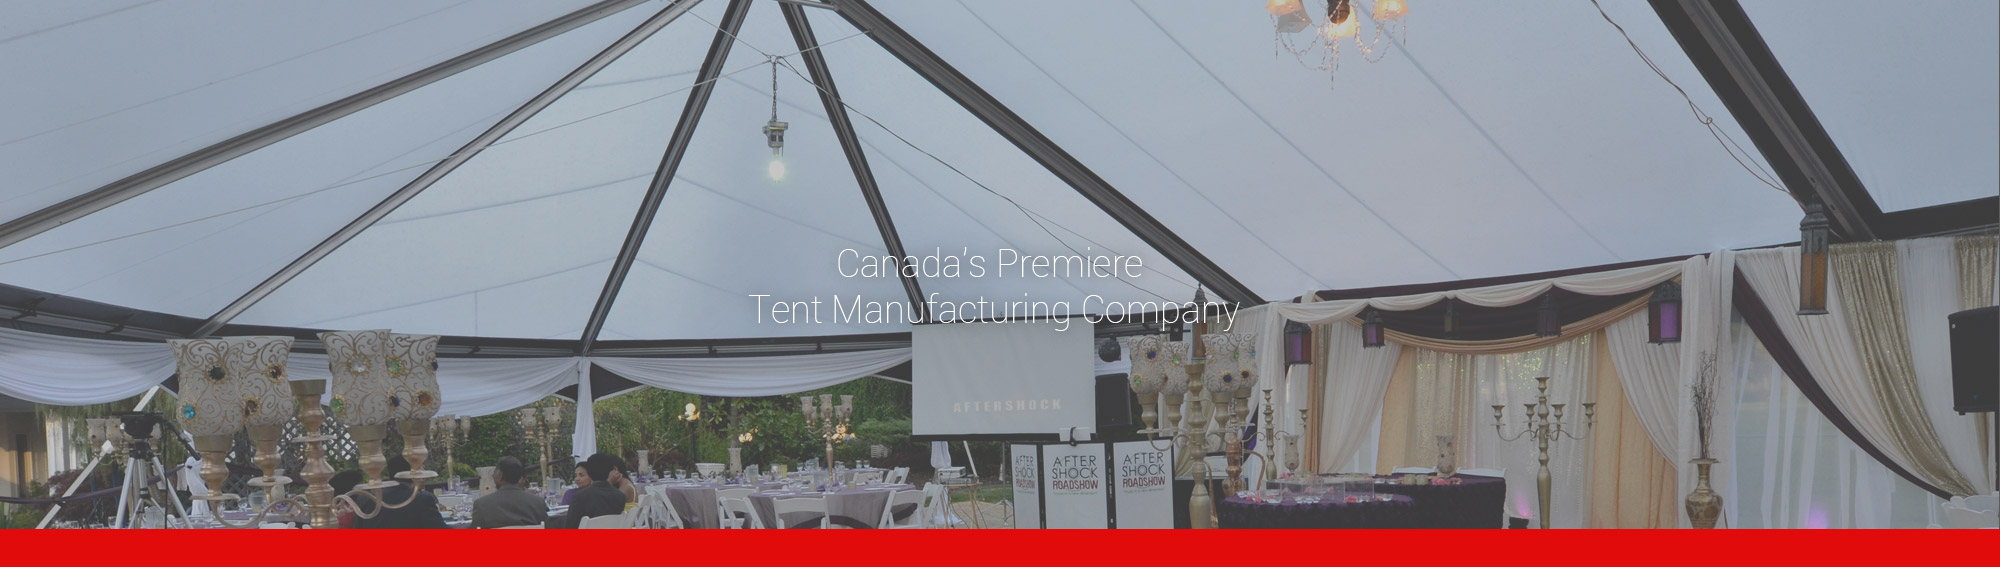 Ideal Canopy Tent & Structure | Party Tents, Construction Shelters